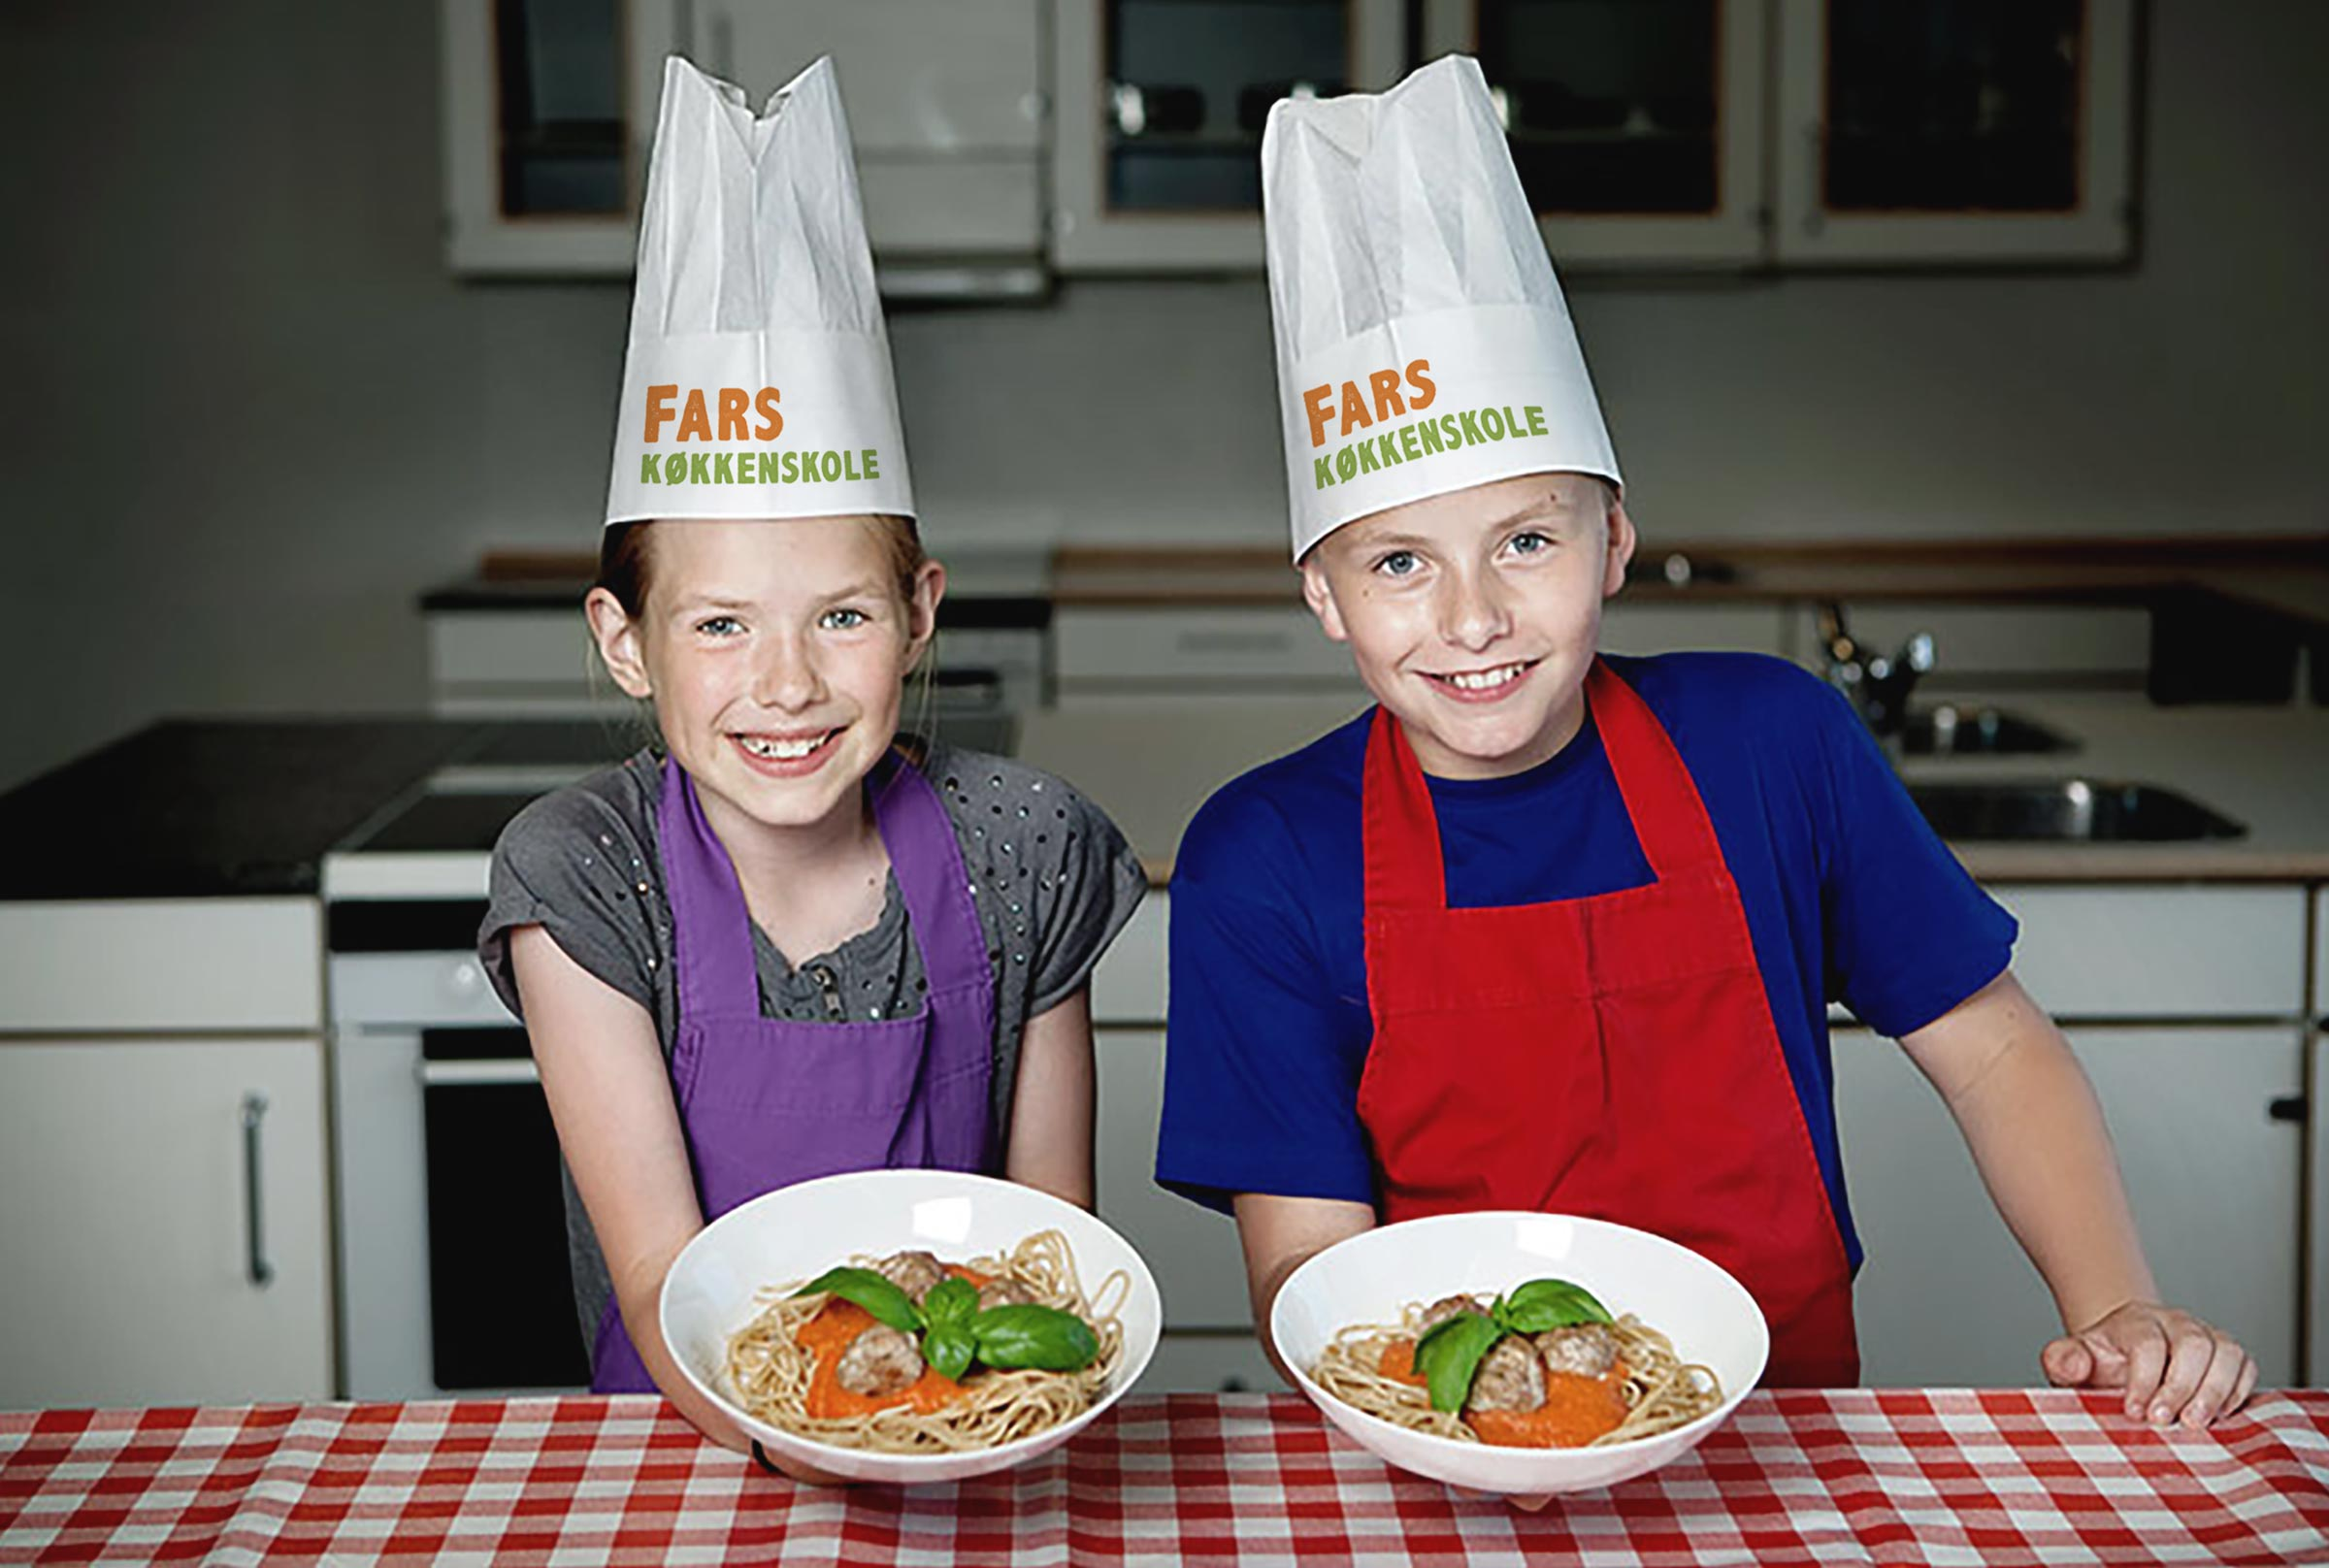 Fars_koekkenskole_hello_kitchen_09